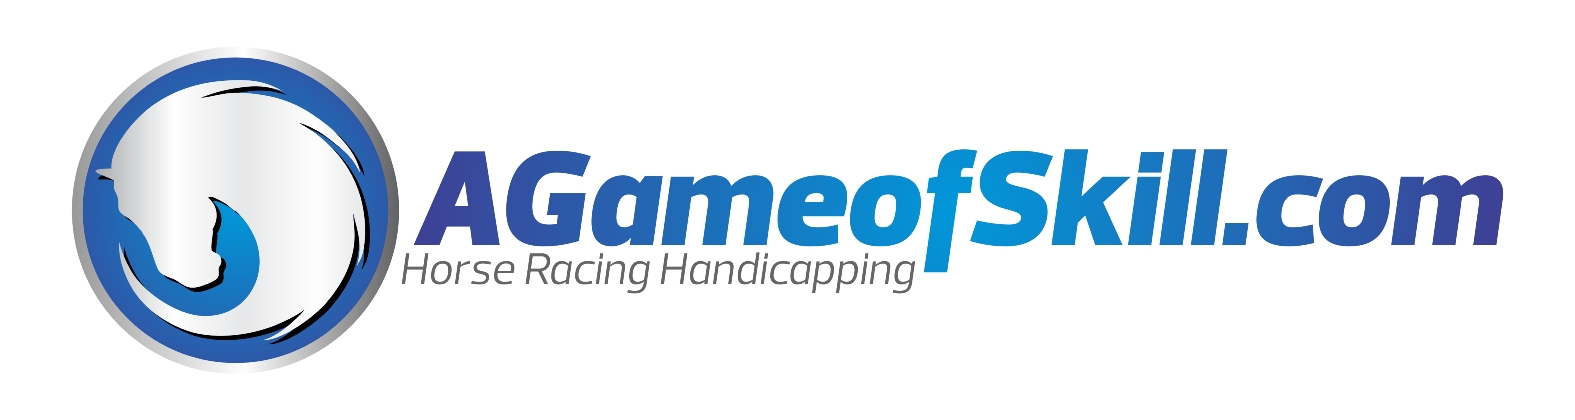 Agameofskill.com - A game of skill horse racing handicapping